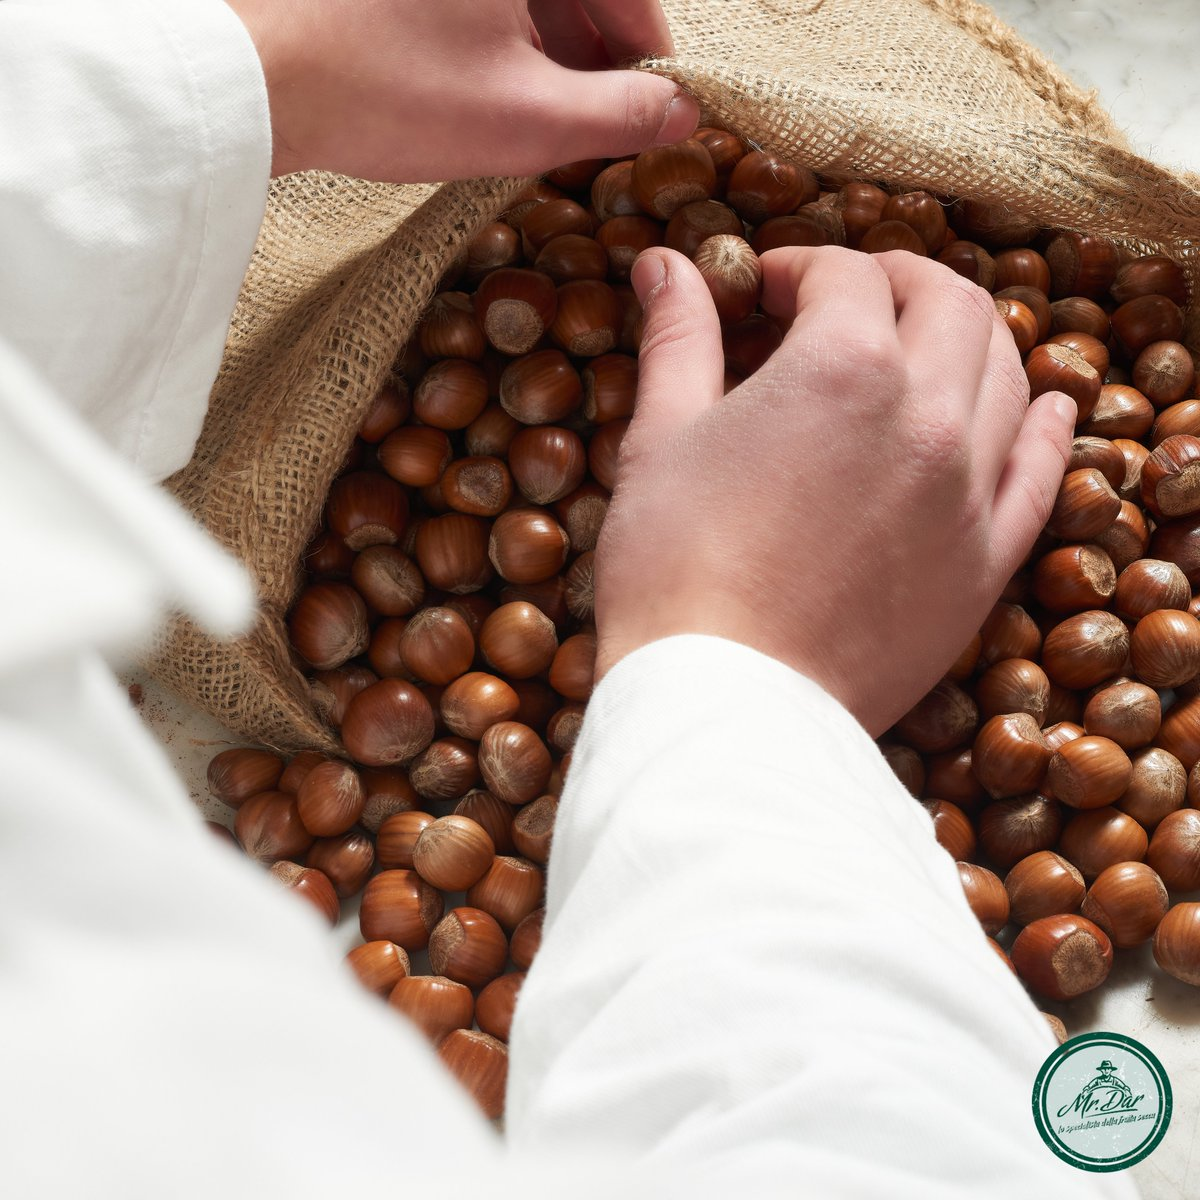 Brown gold... #hazelnuts #nocciole #nuts #fitfood #healthyfood #madeinitaly #italianfood #mrdar https://t.co/QtsLSRxcFK